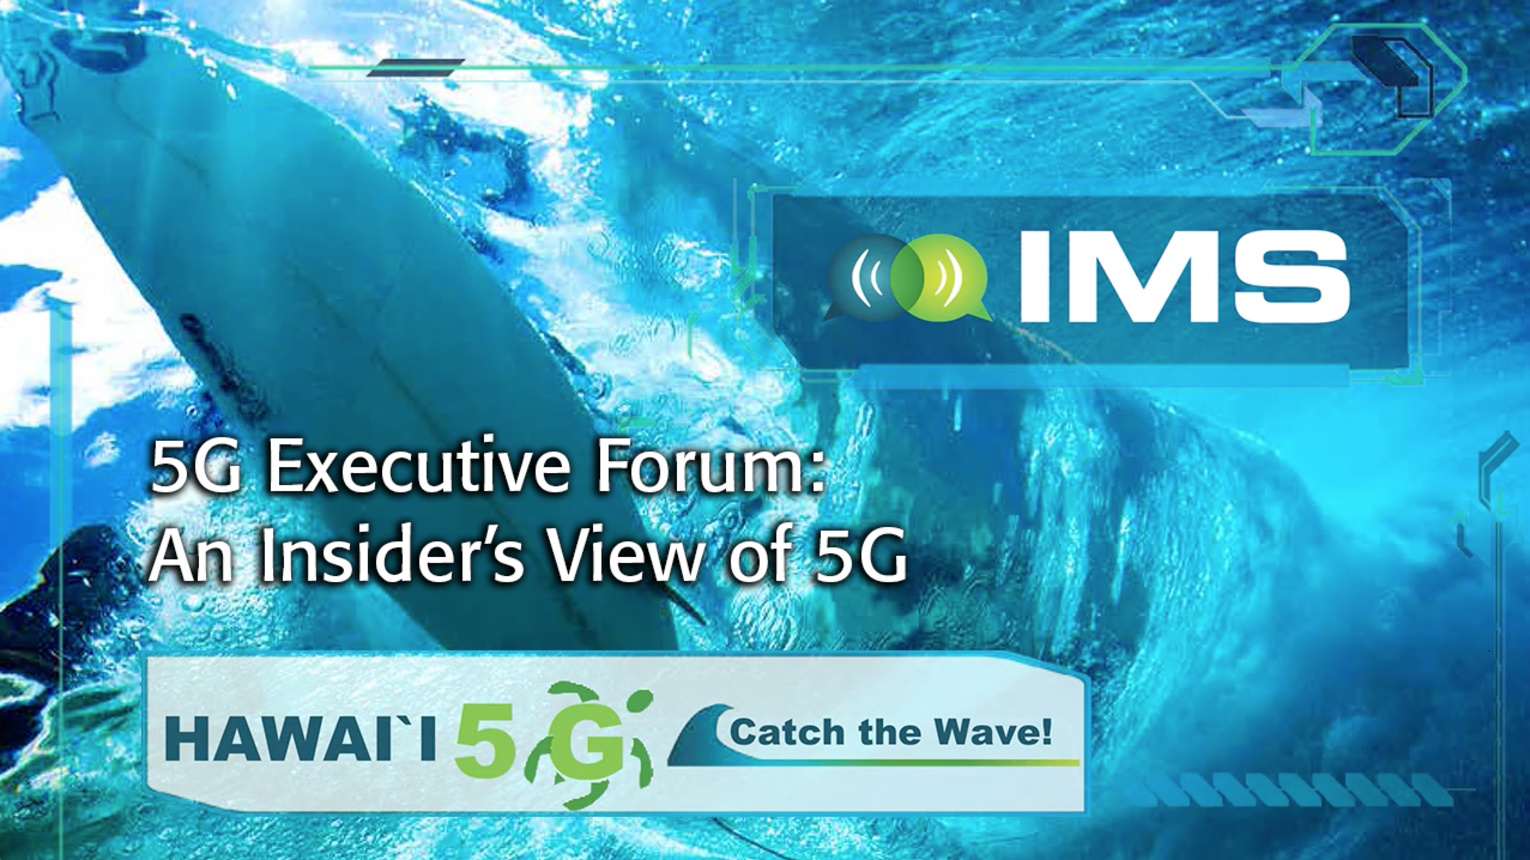 5G Executive Forum: An Insider's View of 5G - IMS 2017